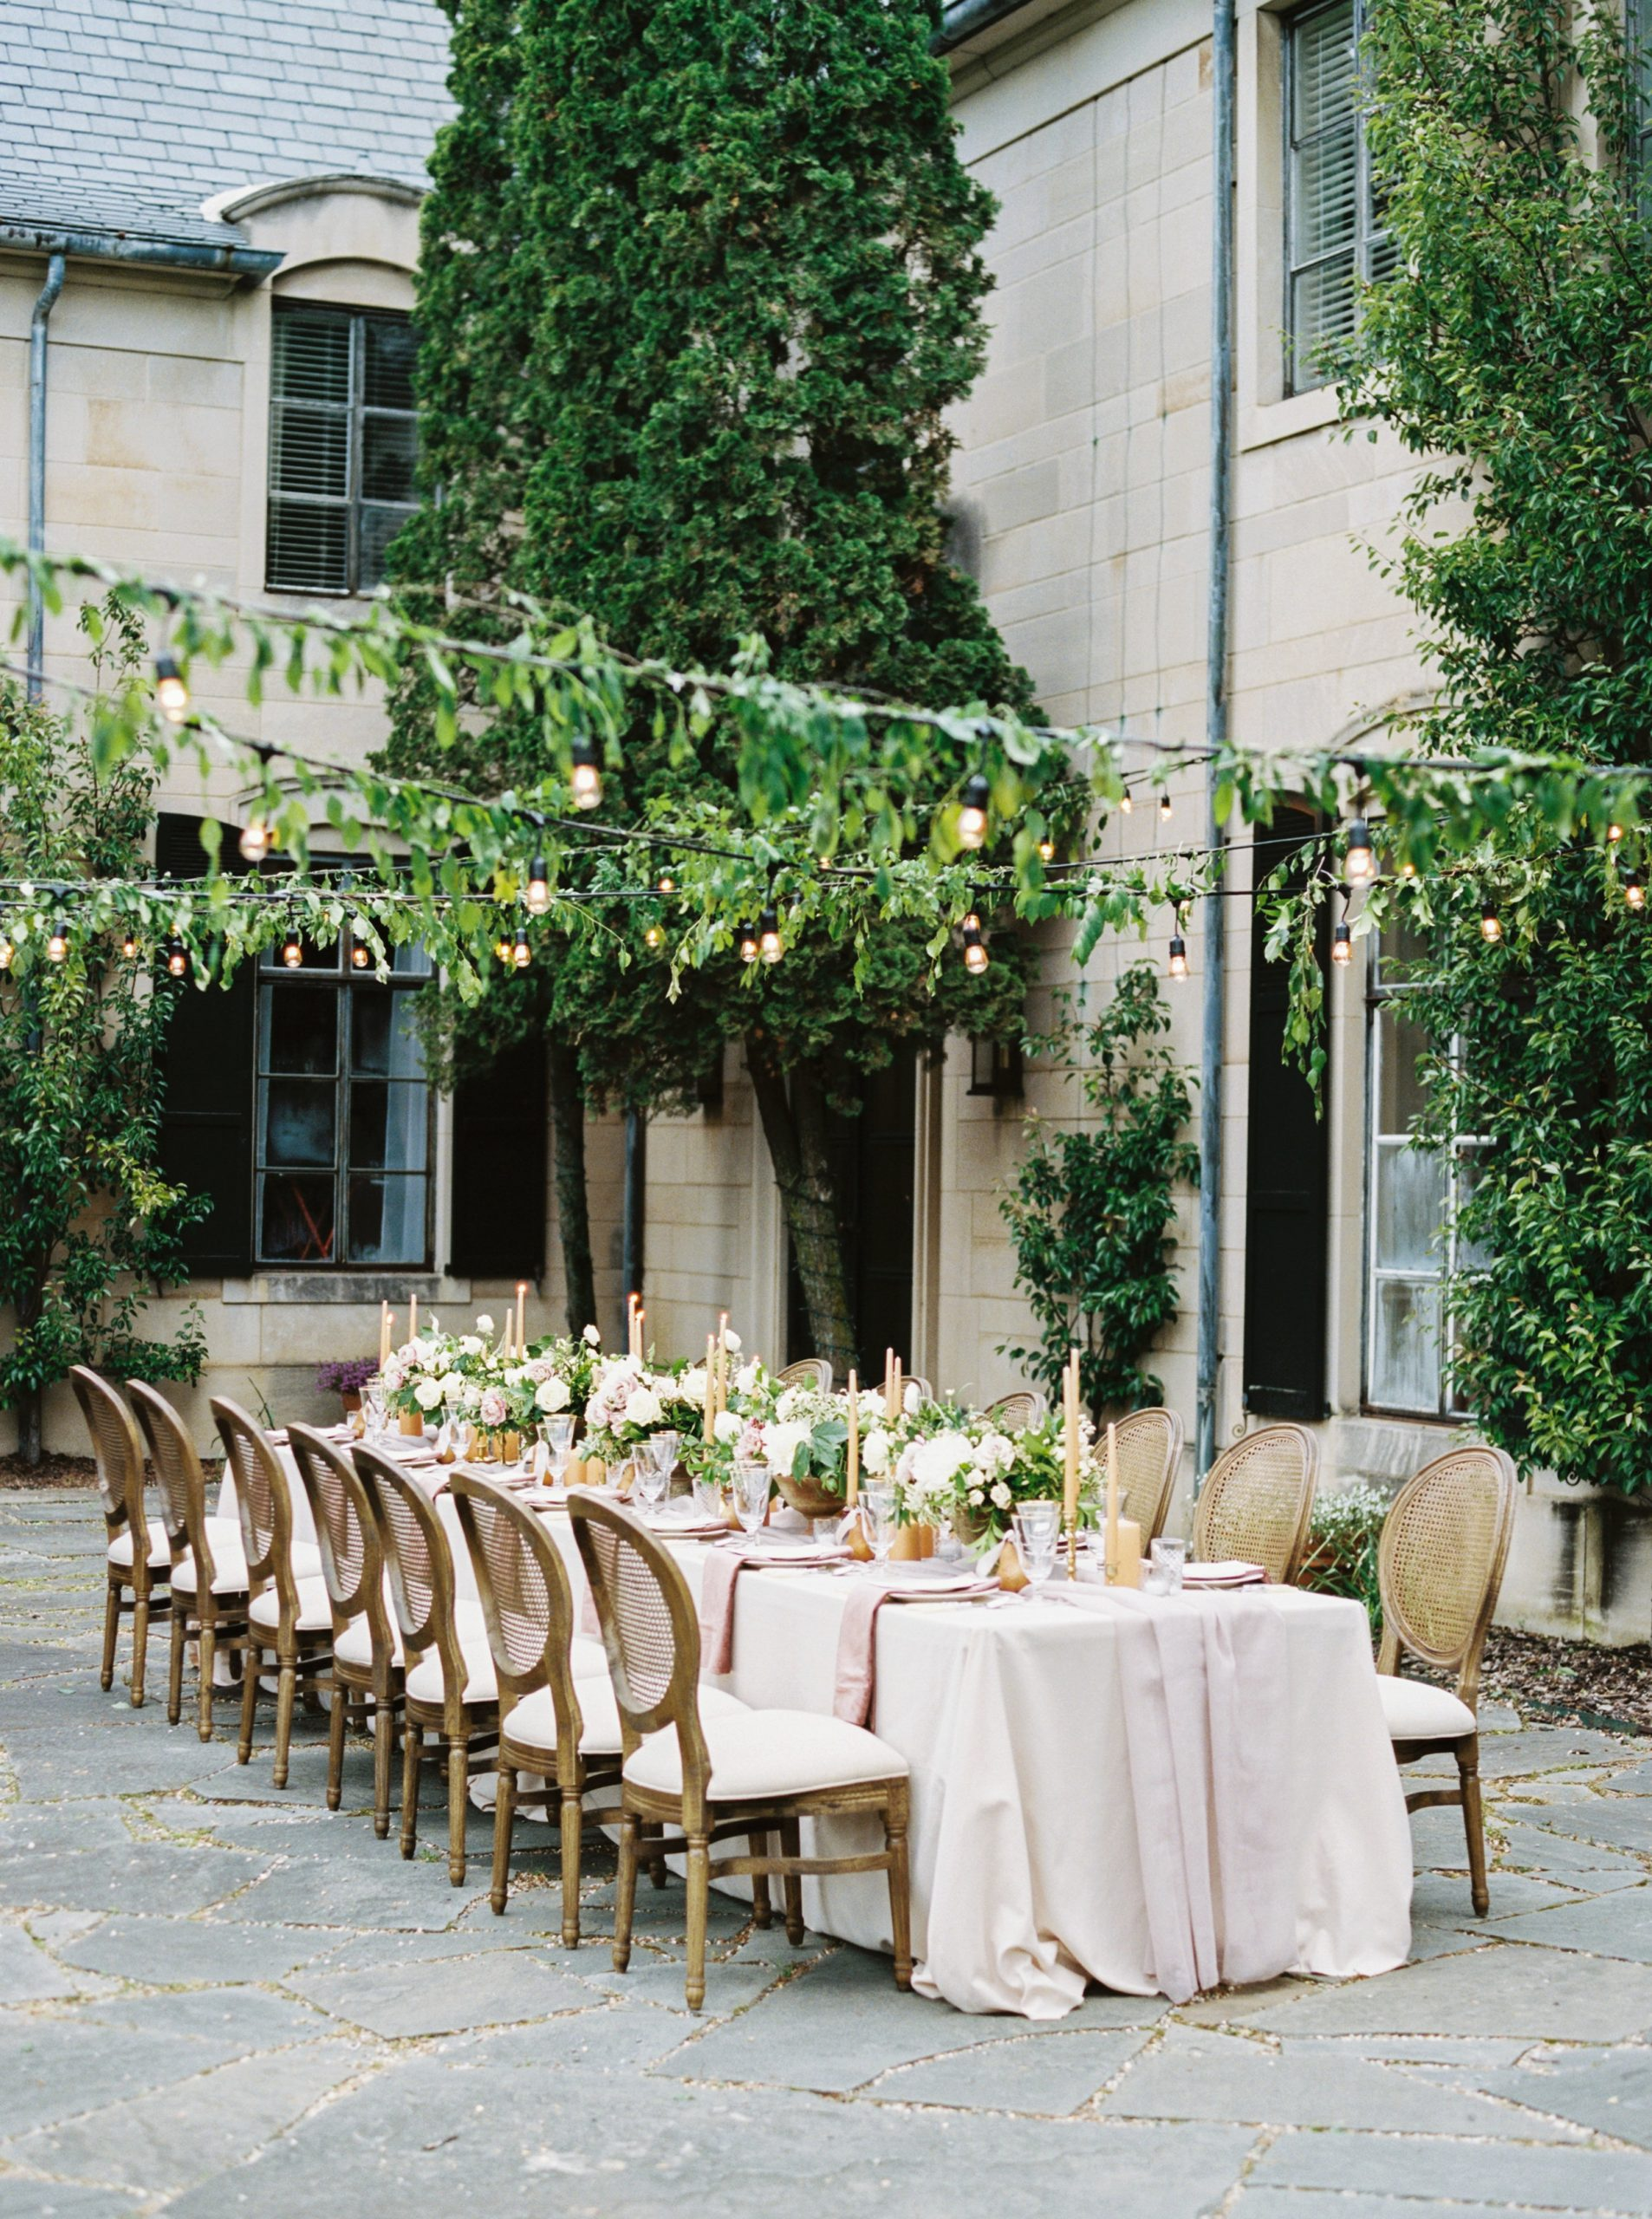 Outdoor Wedding Seating at an Estate Wedding Venue